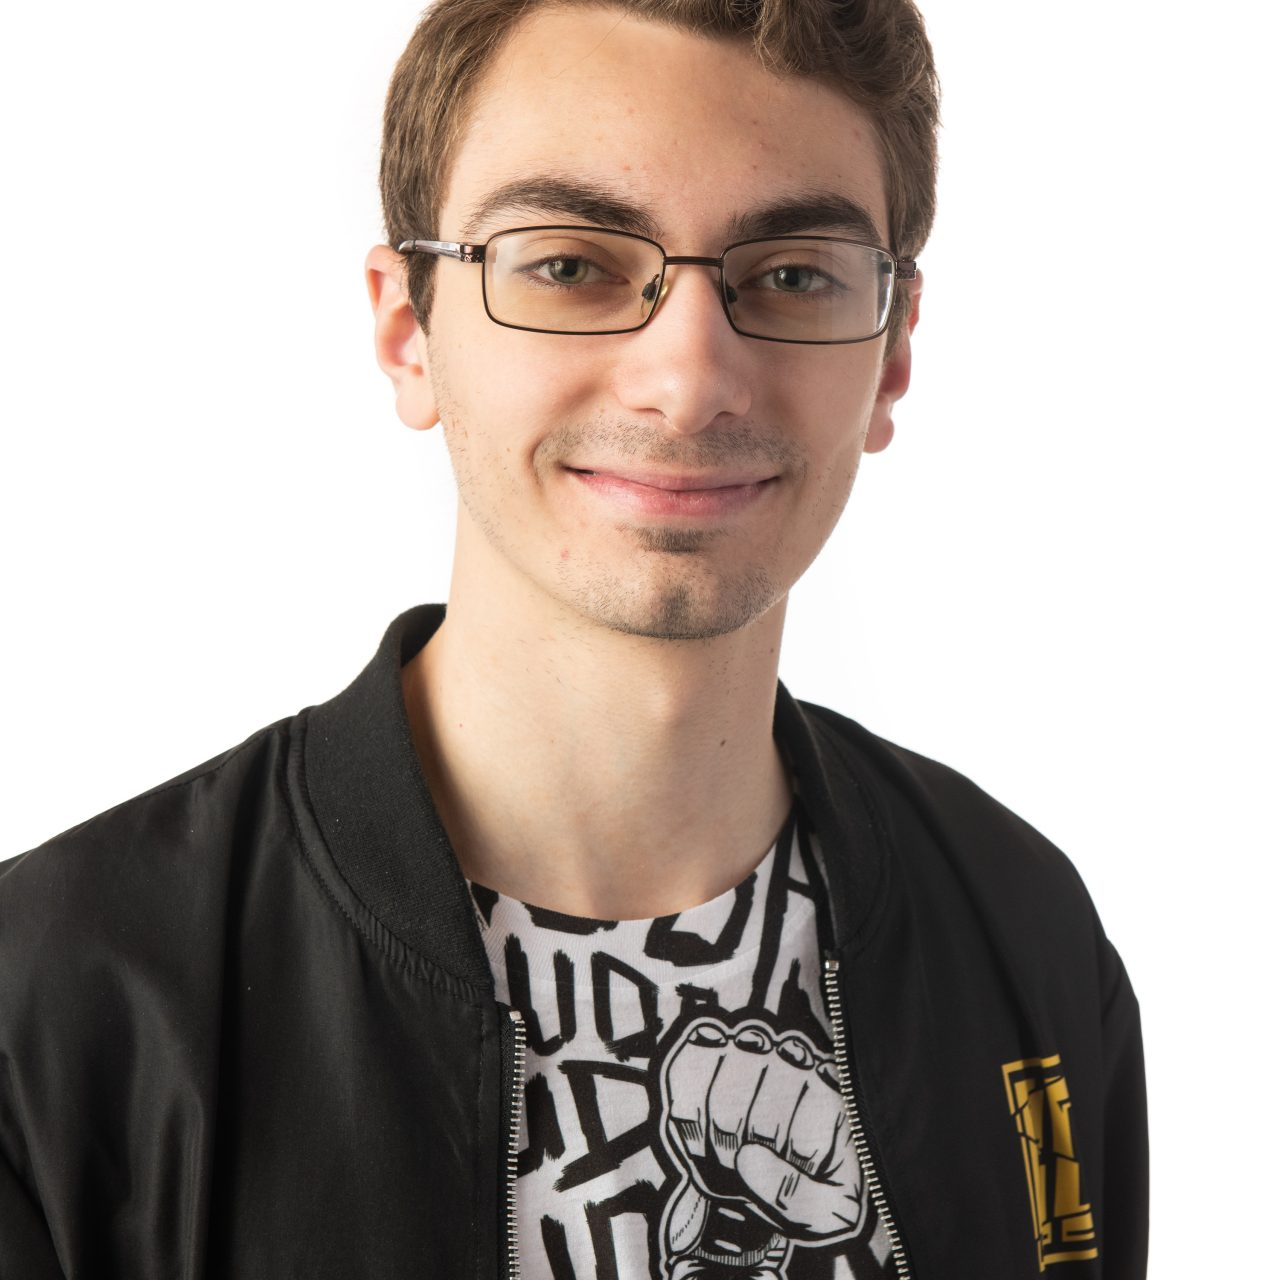 Profile image of a smiling student